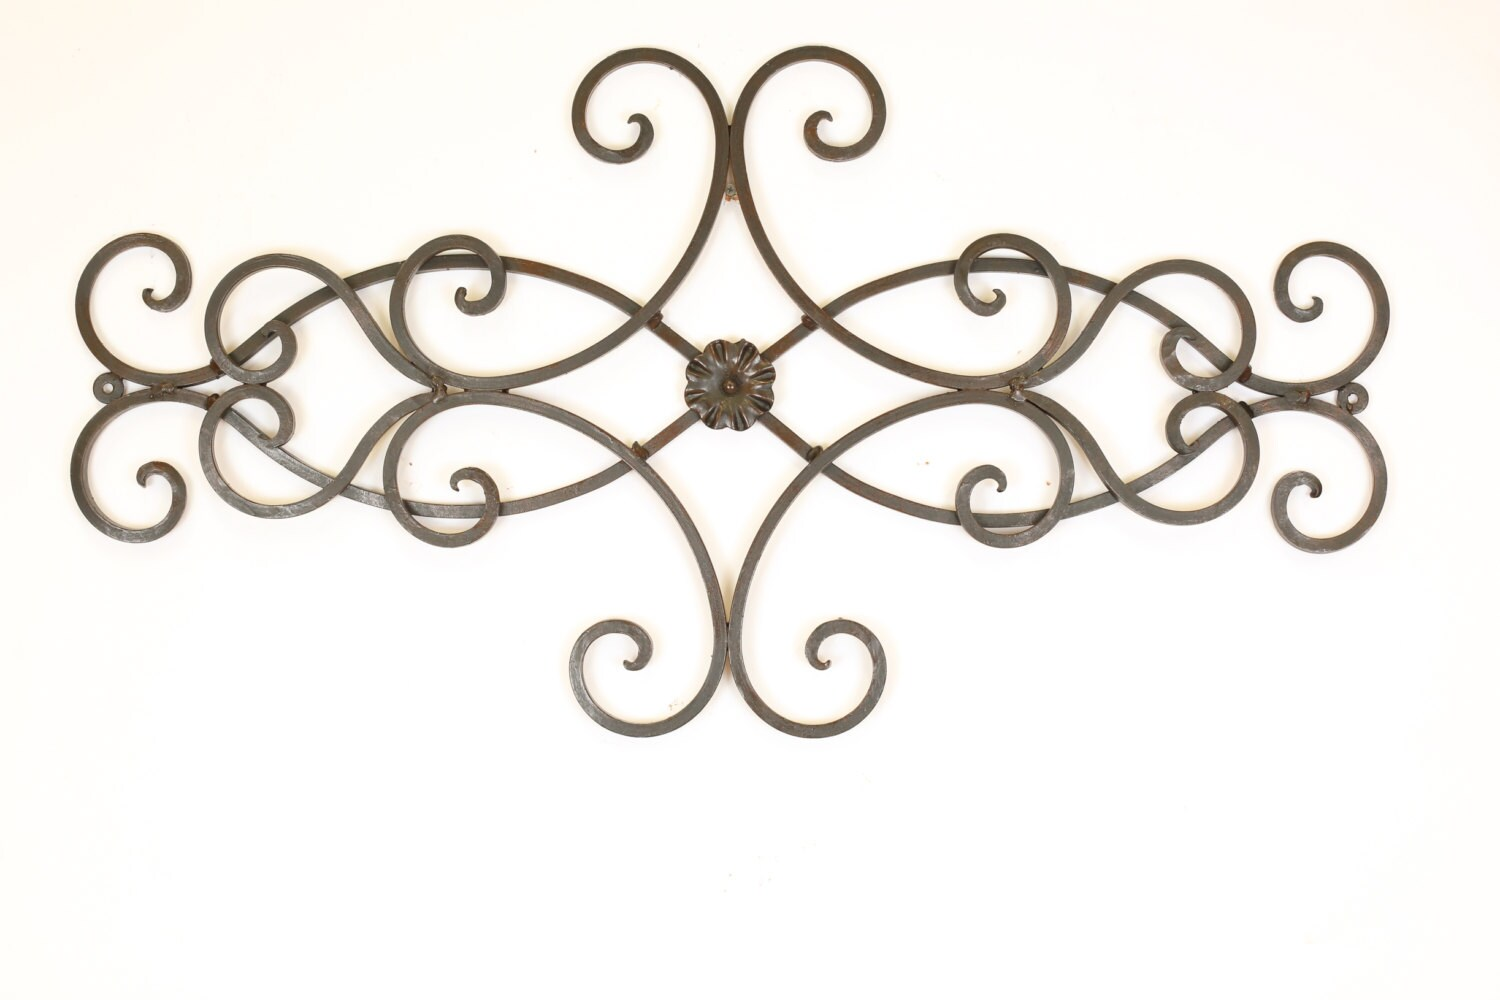 Wrought Iron Heart Wall Decor Architectural Iron Door Topper Heart Scroll Wall